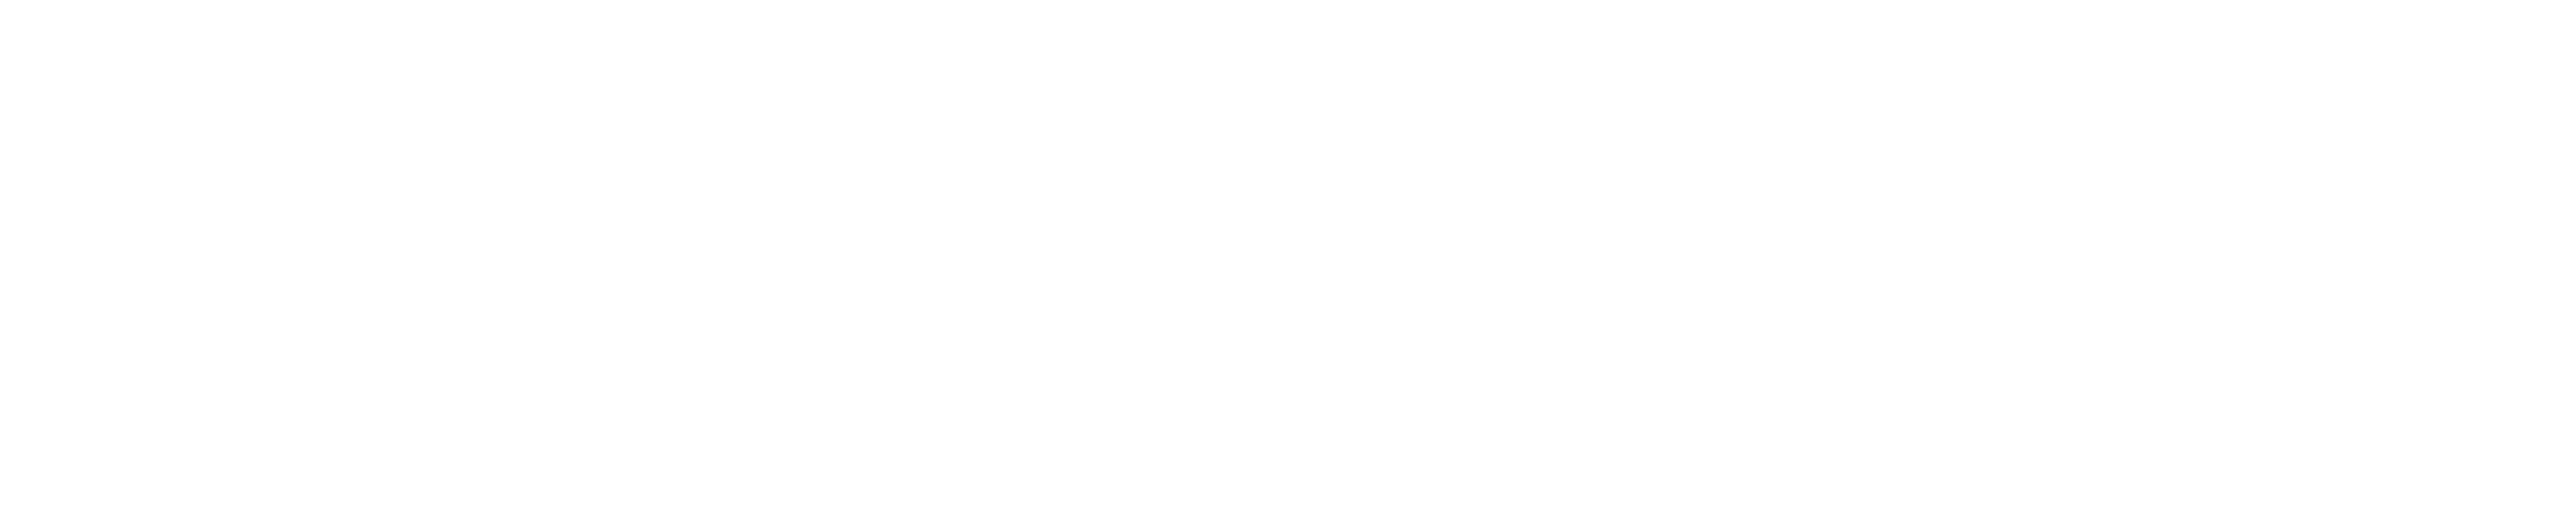 manageawesome | leadawesome | actawesome